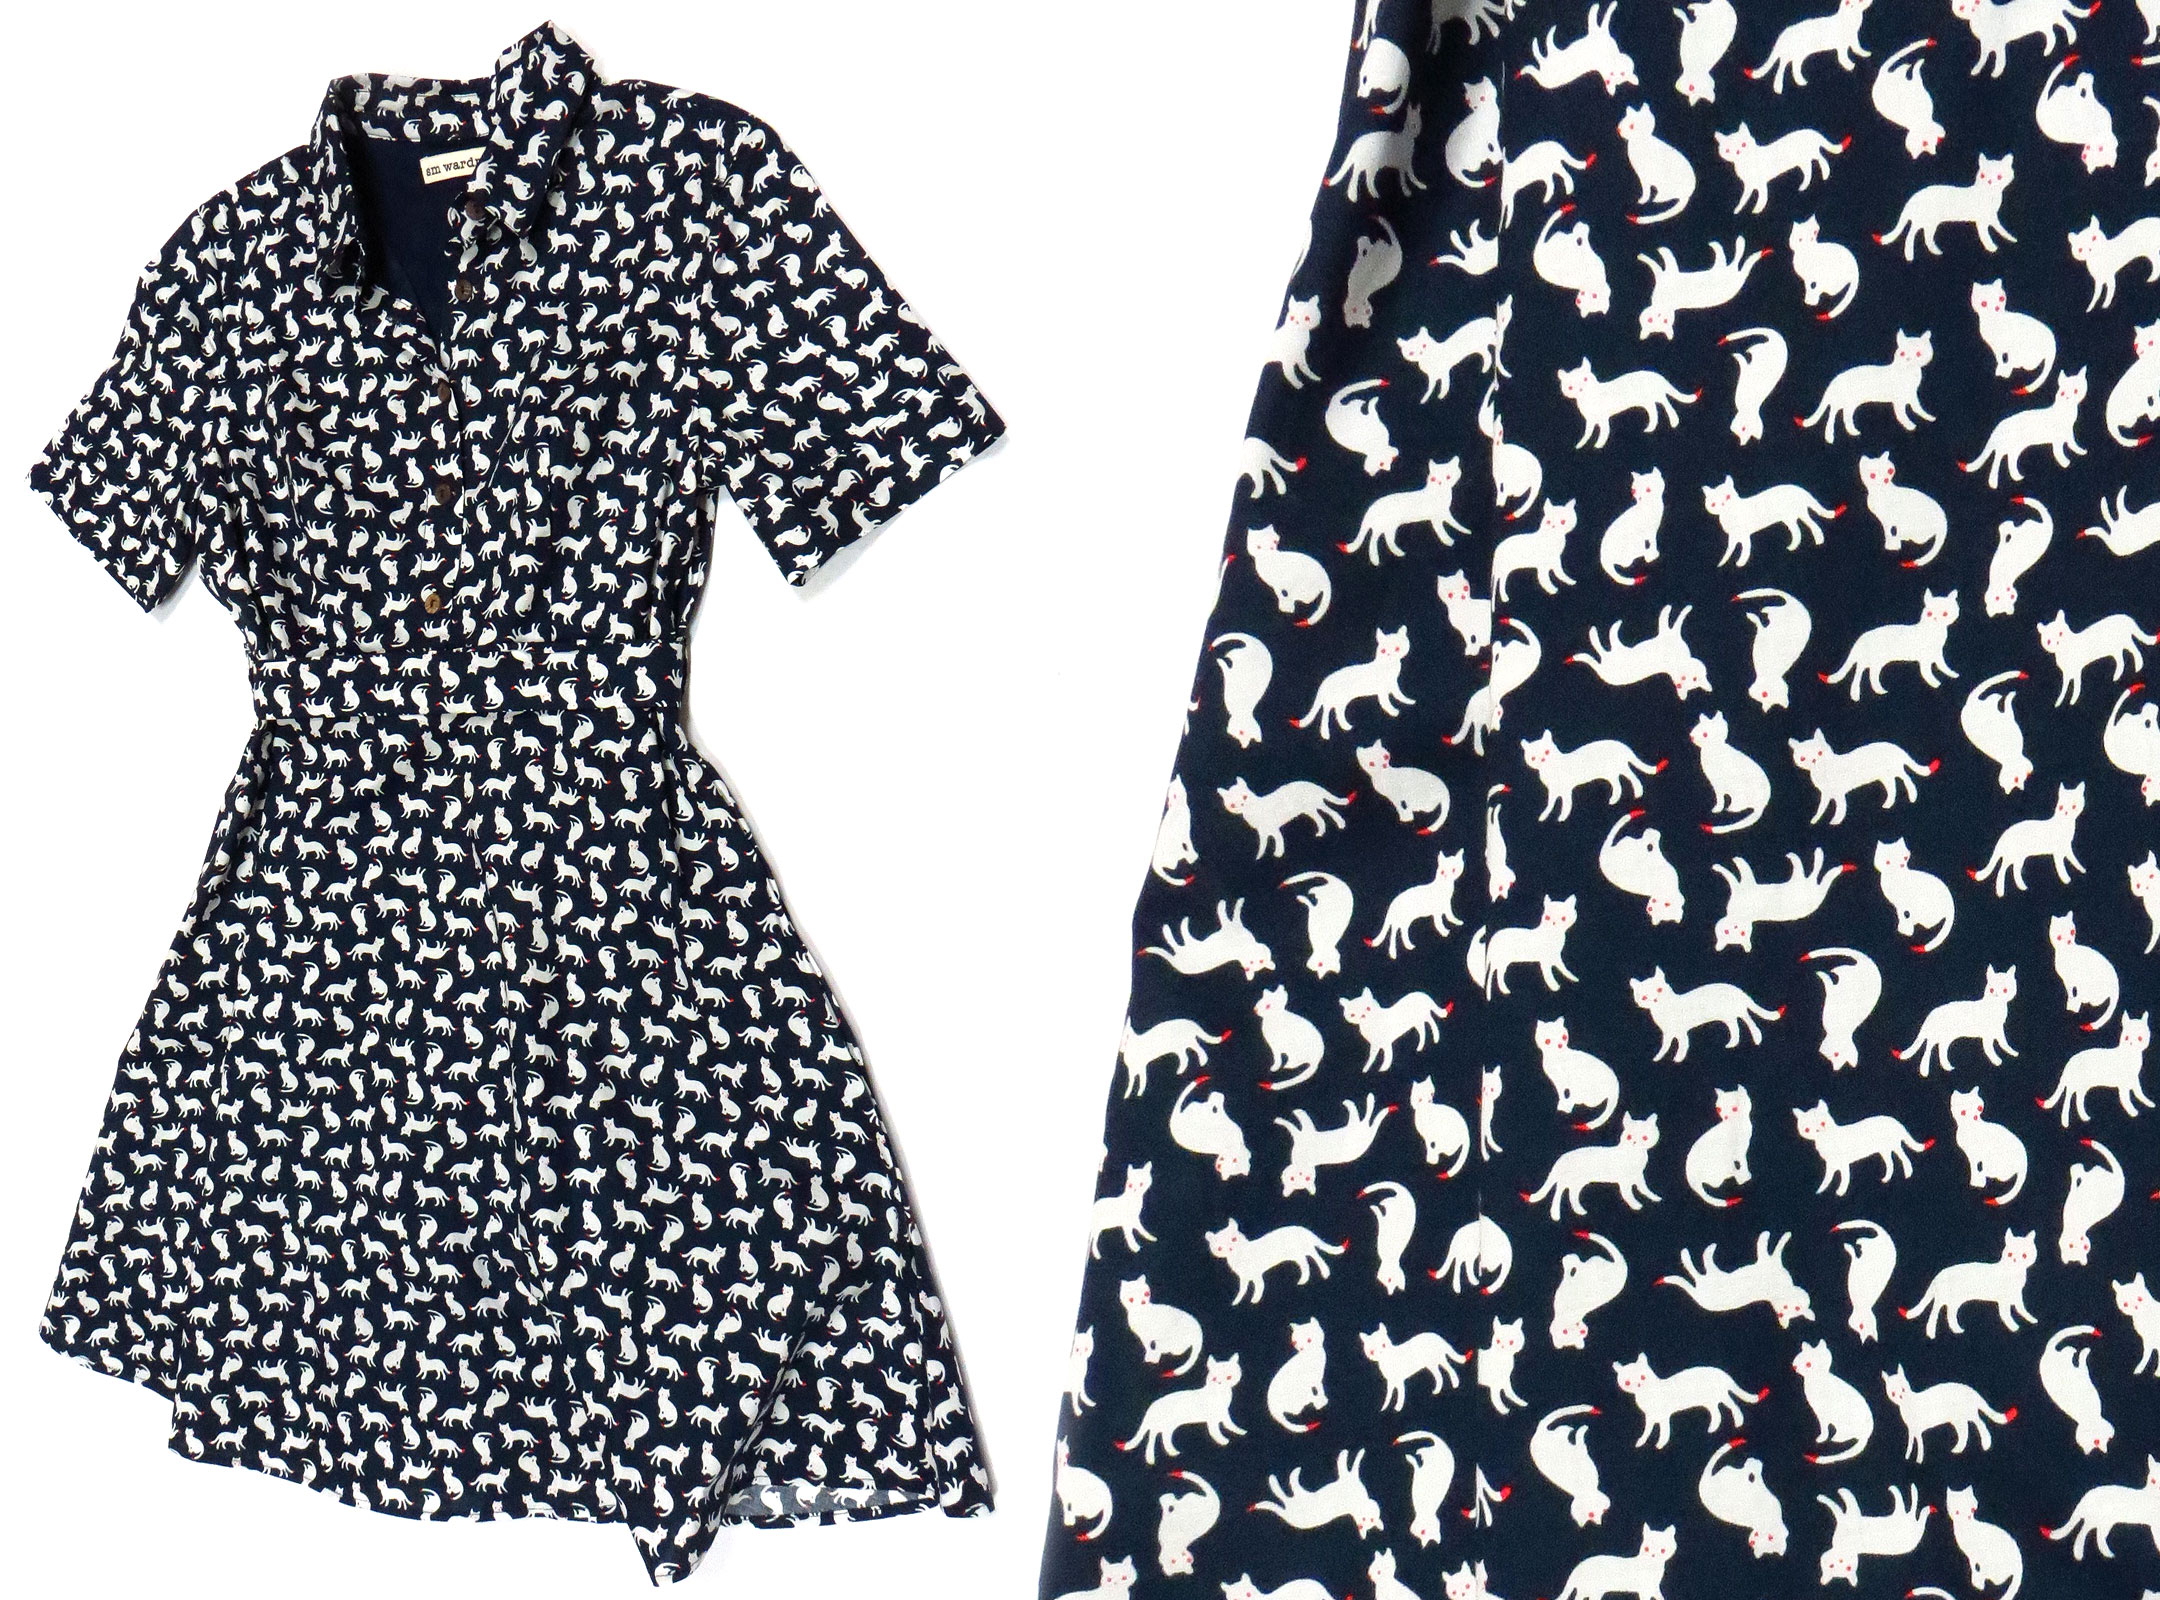 Crazy Cat Lady Dress